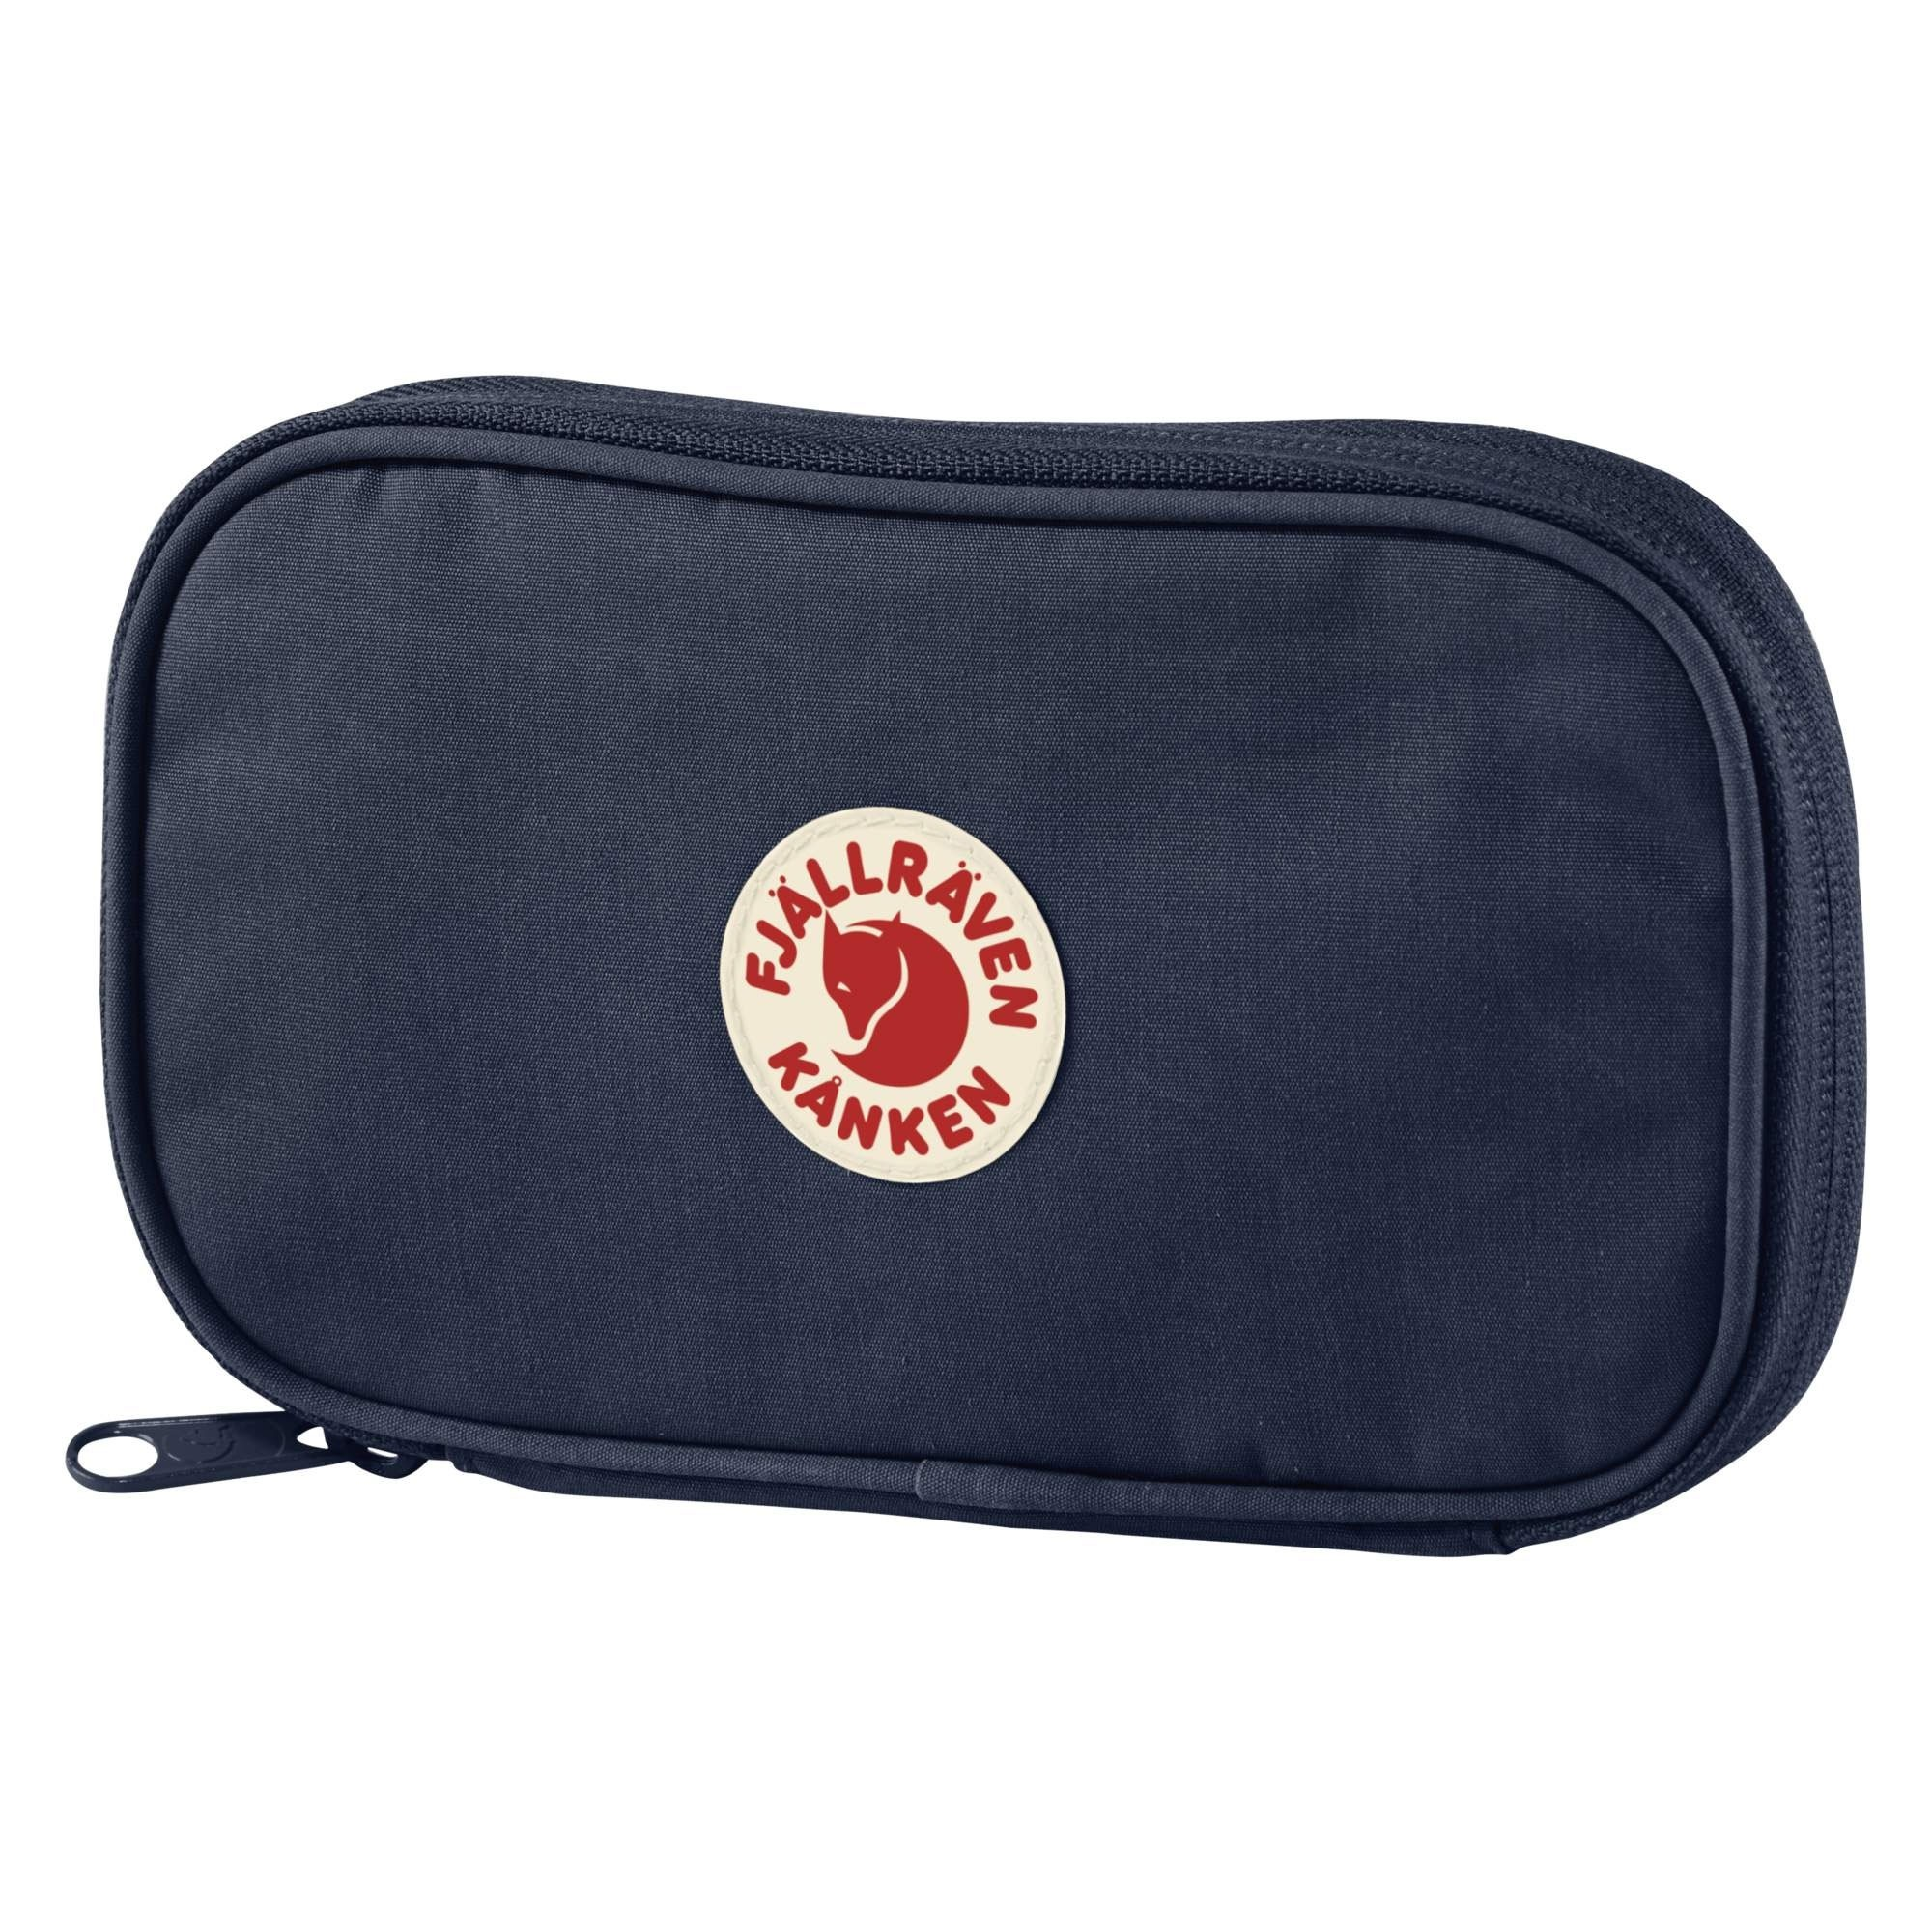 Fjallraven Kanken Travel Wallet - Navy